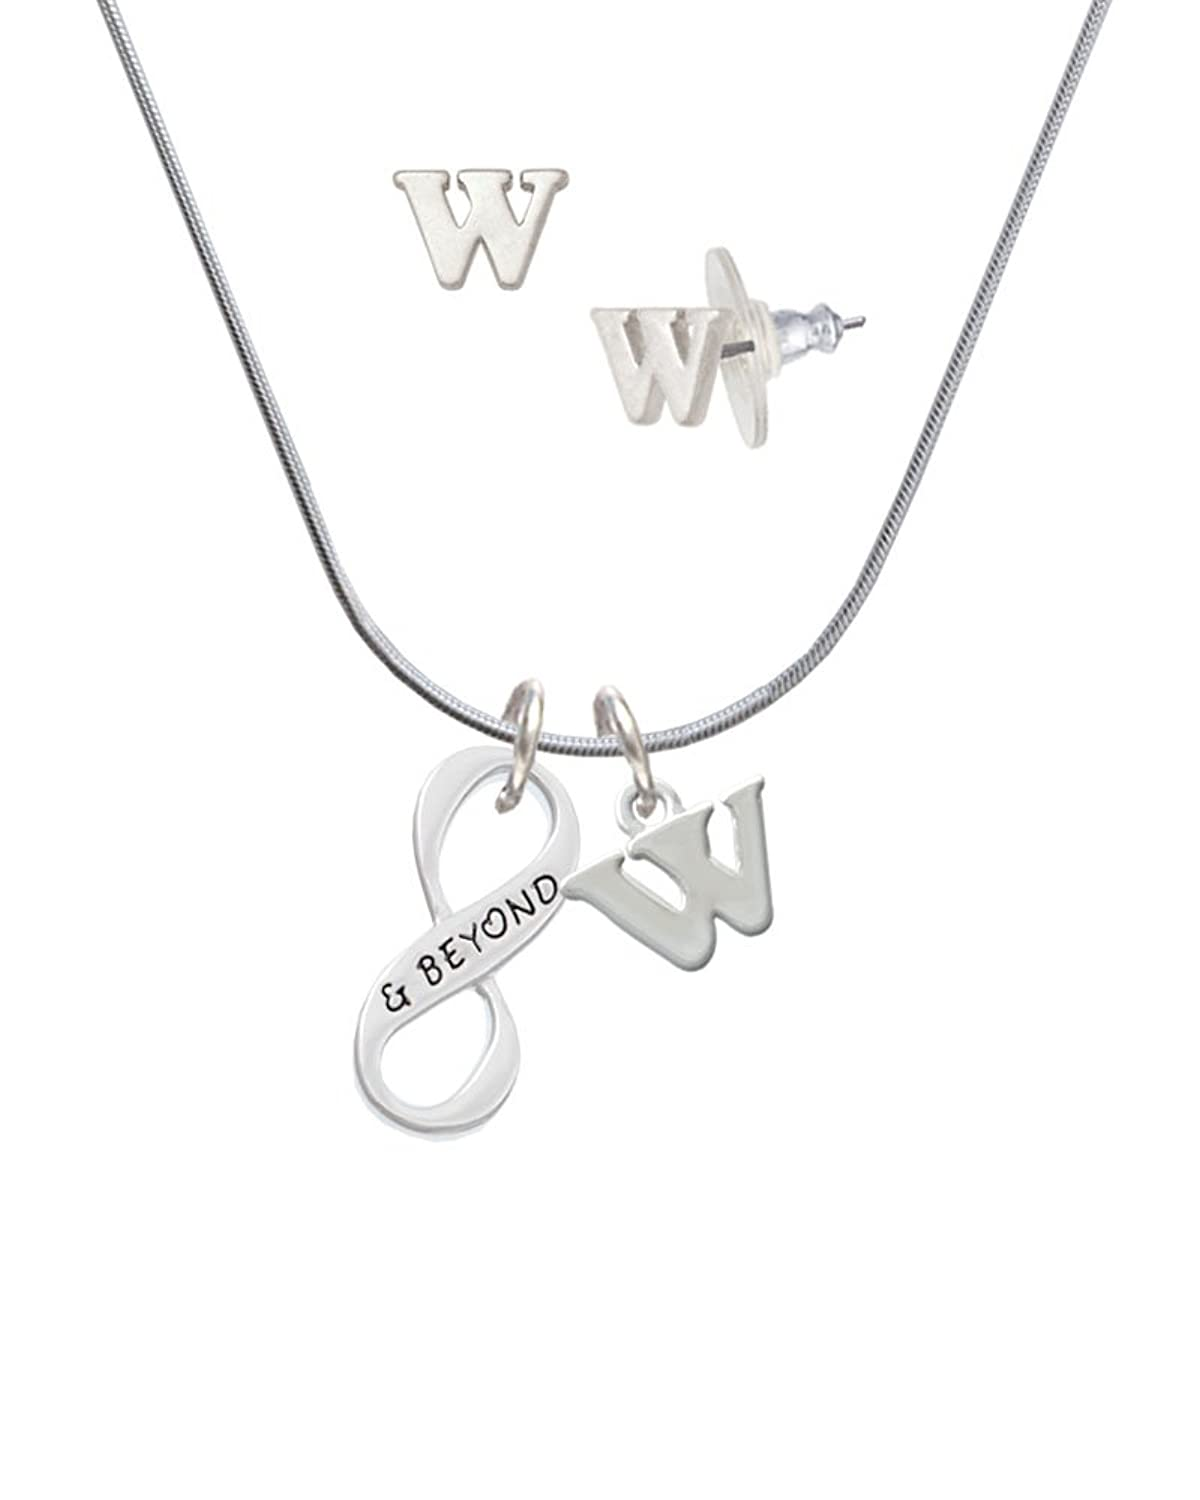 & Beyond Infinity Sign - W Initial Charm Necklace and Stud Earrings Jewelry Set